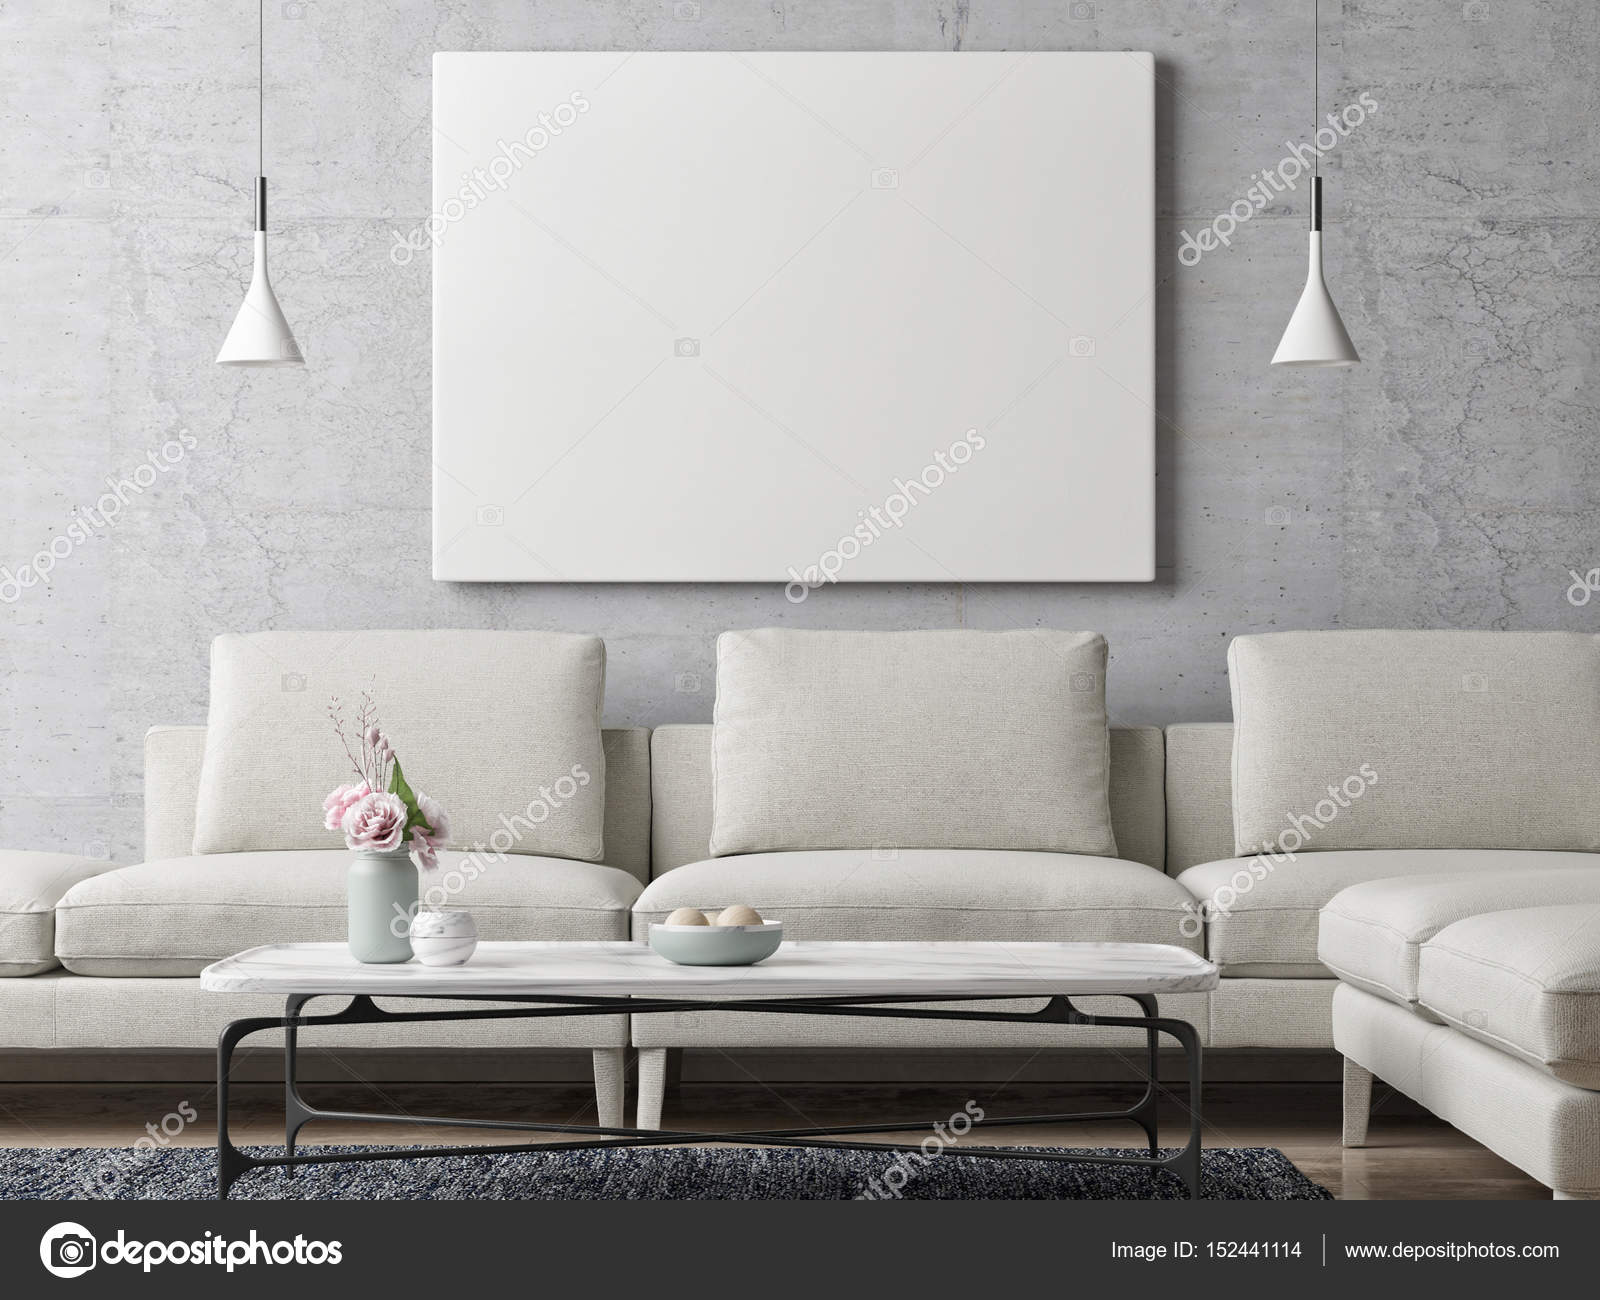 wallpaper for my living room white poster on concrete wall living room background 21197